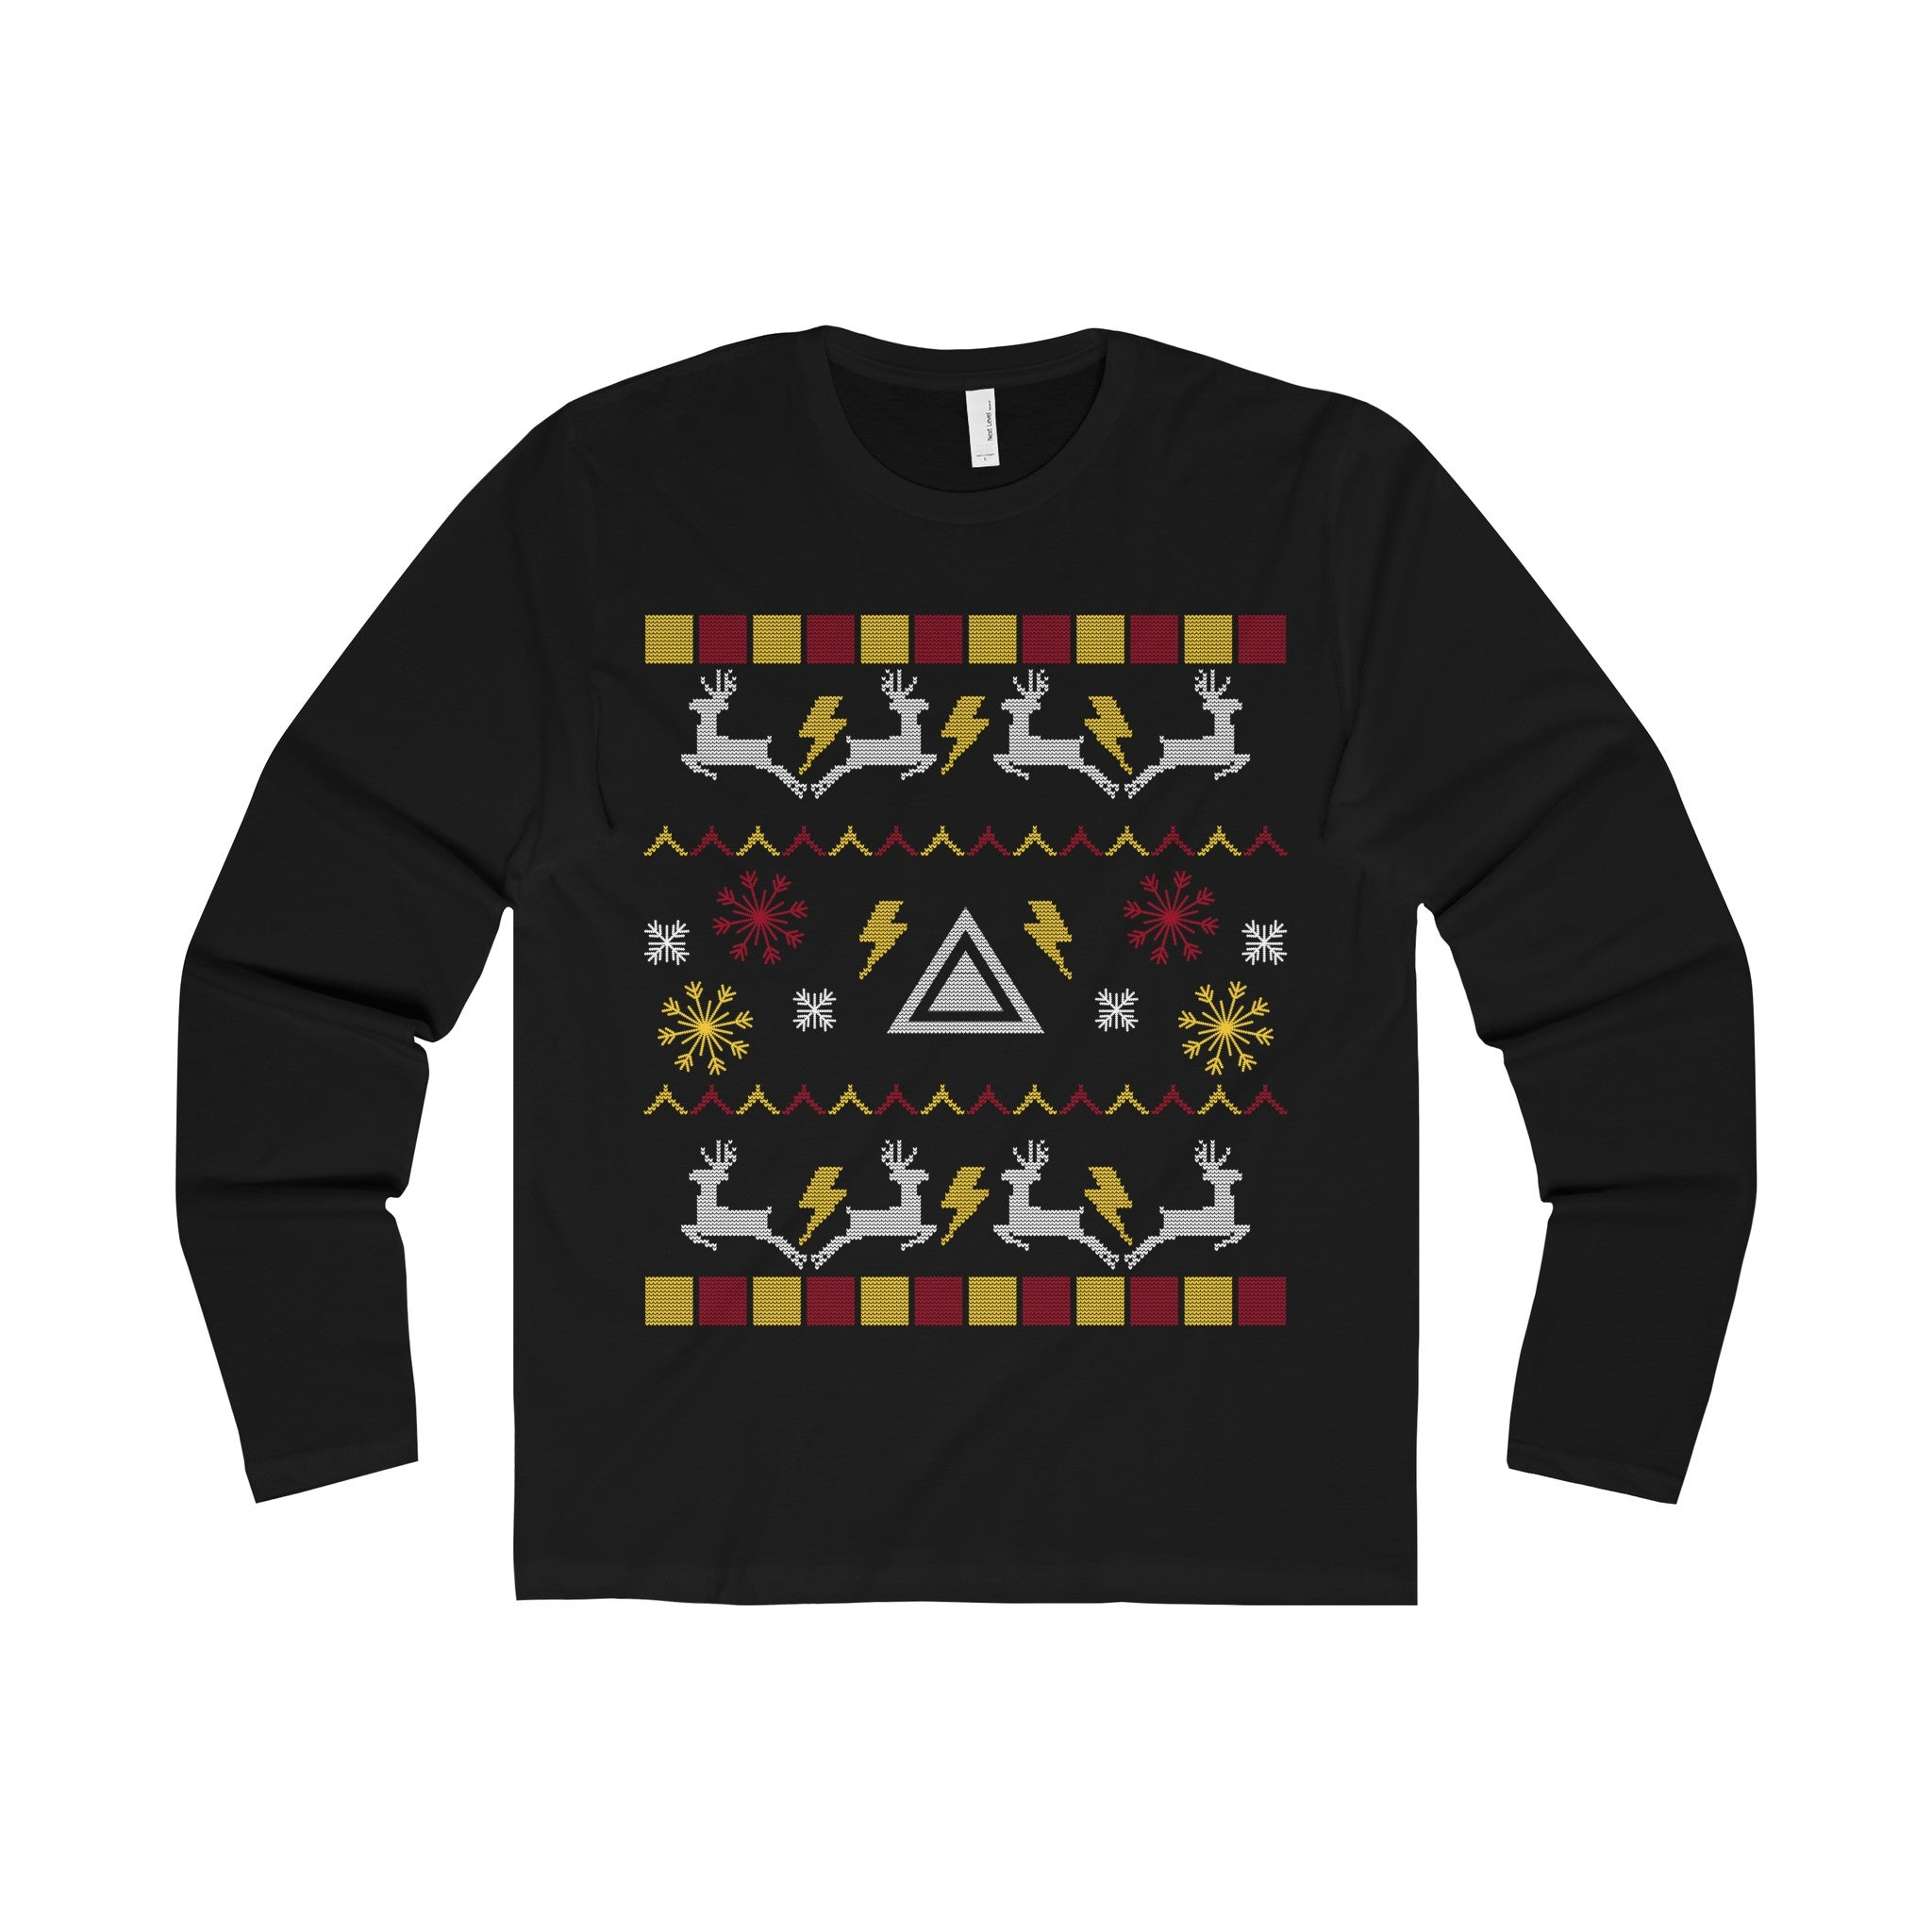 harry potter ugly christmas sweater long sleeve shirt - Harry Potter Ugly Christmas Sweater